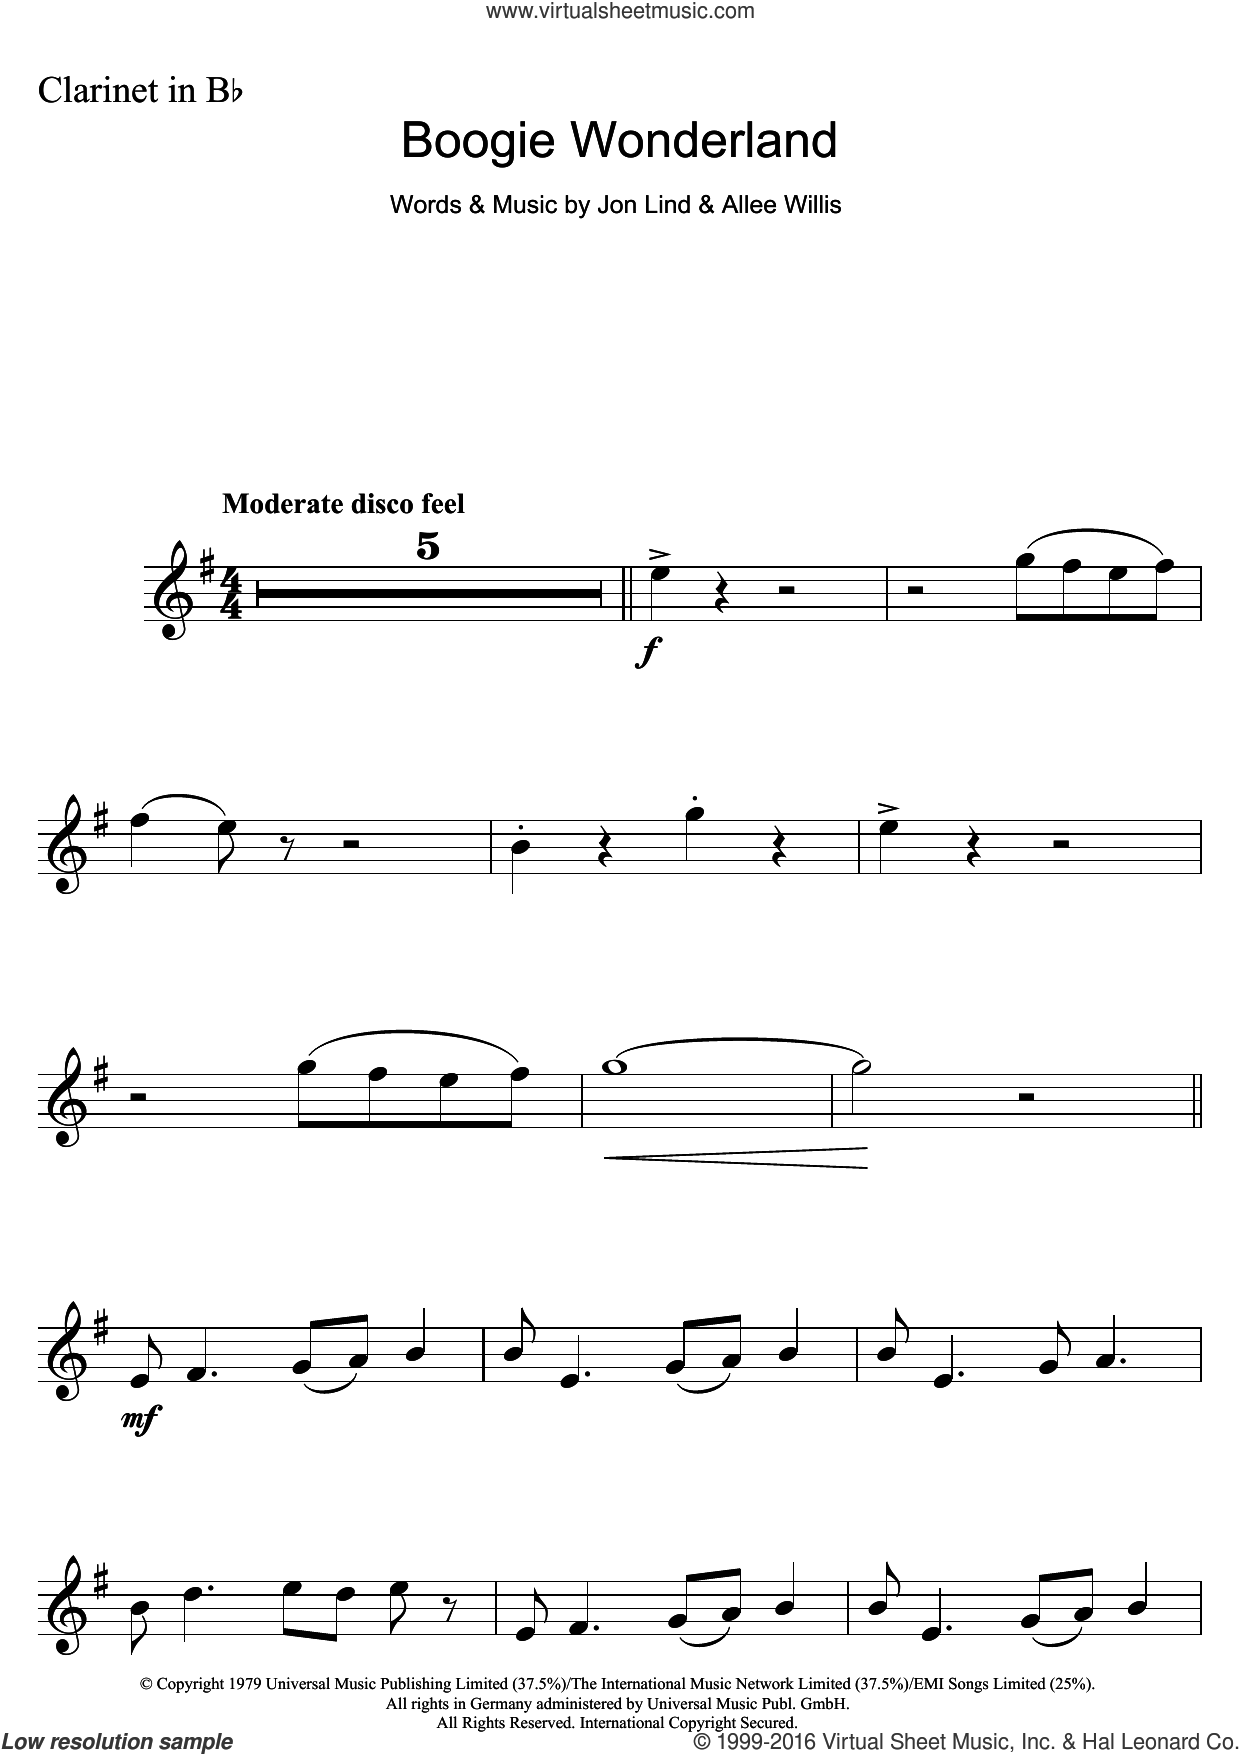 Boogie Wonderland sheet music for clarinet solo by Earth, Wind & Fire, Allee Willis and Jon Lind. Score Image Preview.